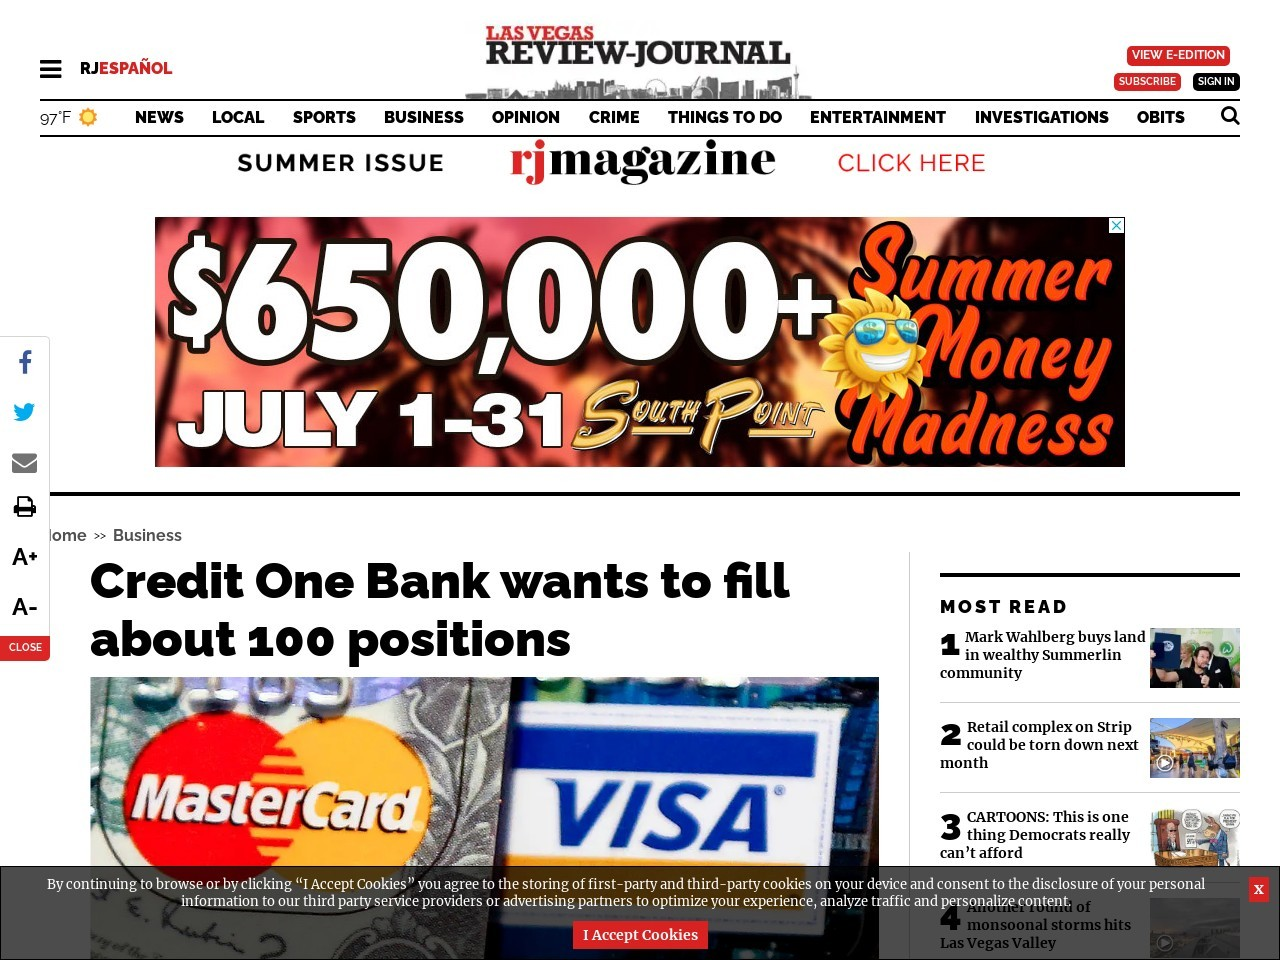 Credit One Bank wants to fill about 100 positions